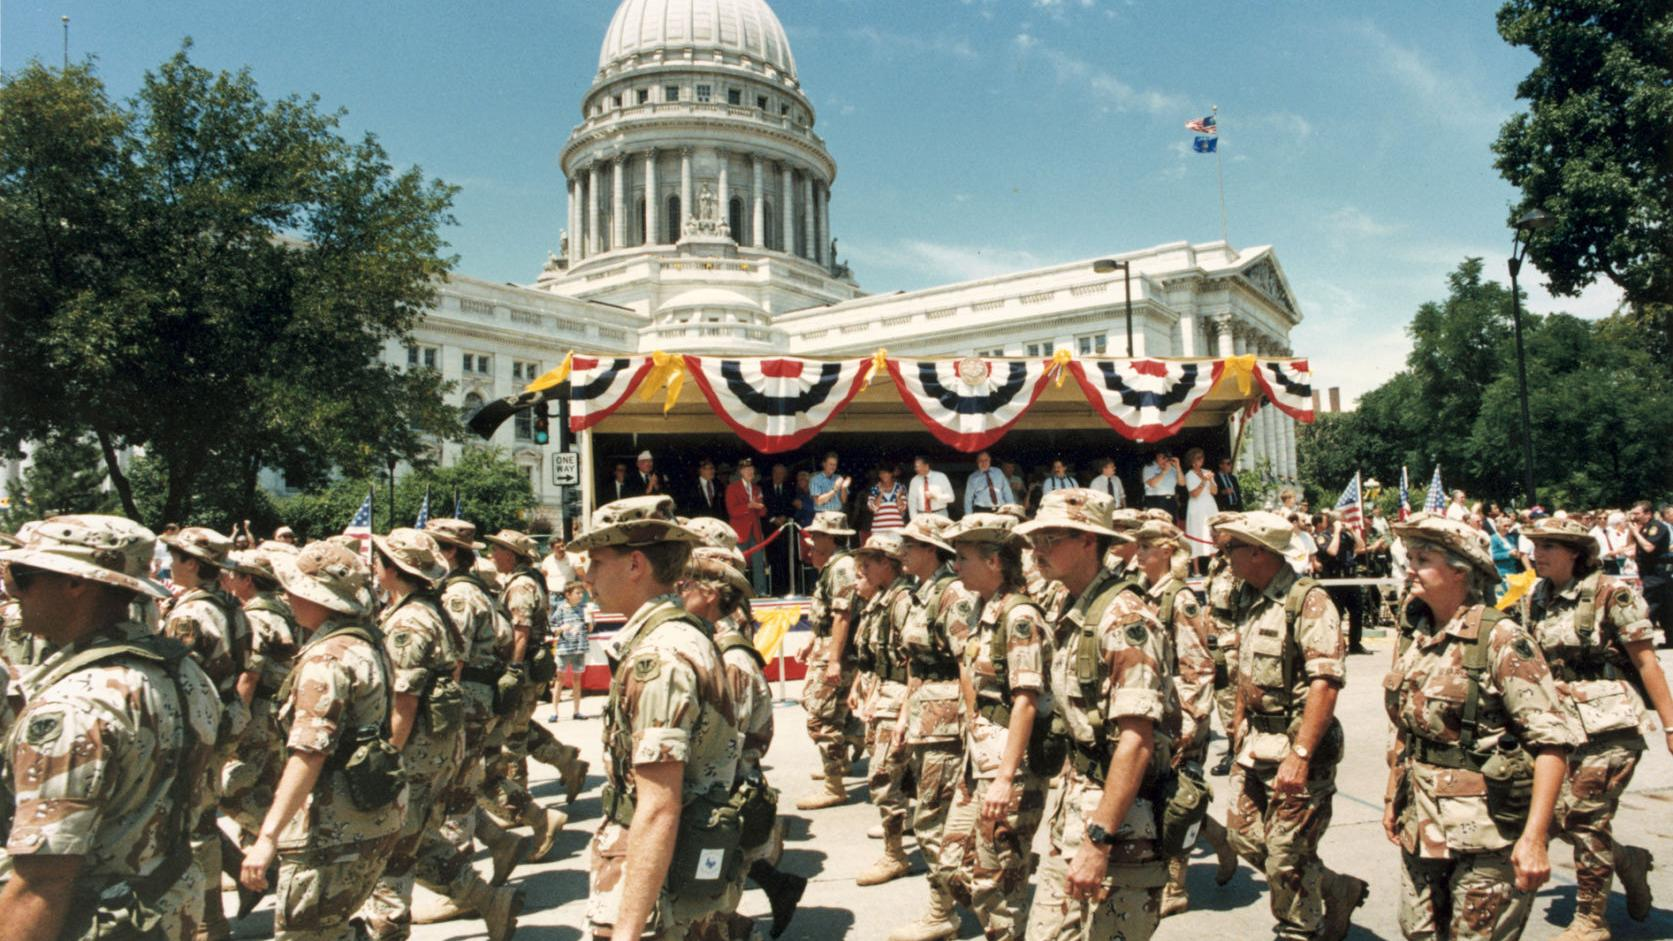 Bring our troops home -- State Journal editorial from 30 years ago